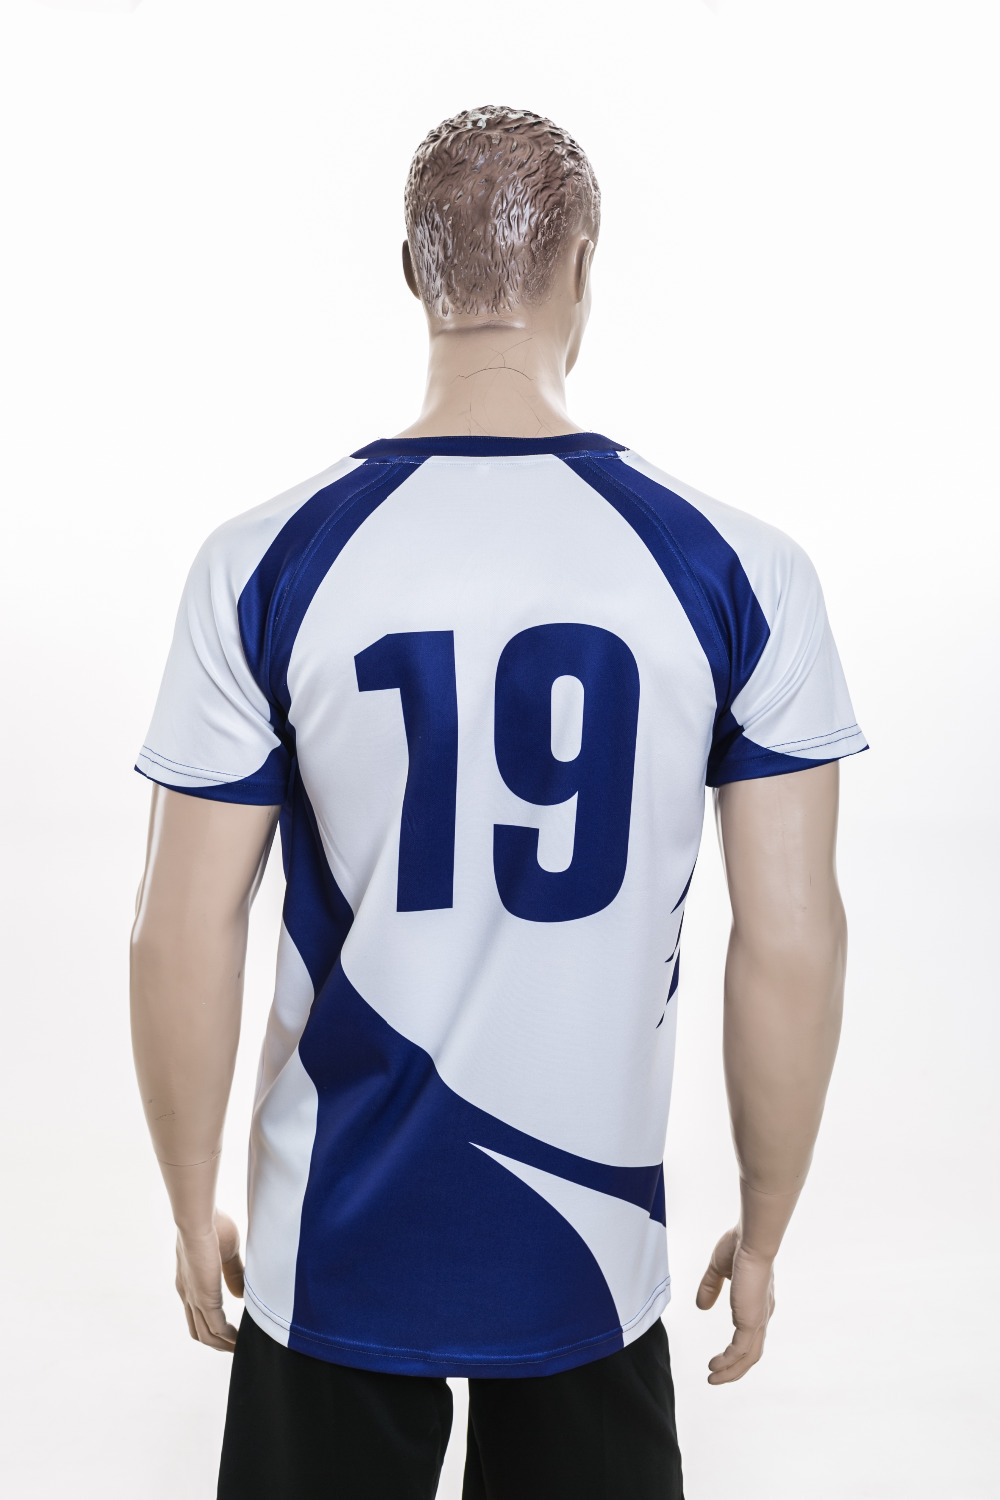 2015 New dye sublimation 100% polyester rugby jersey for sale